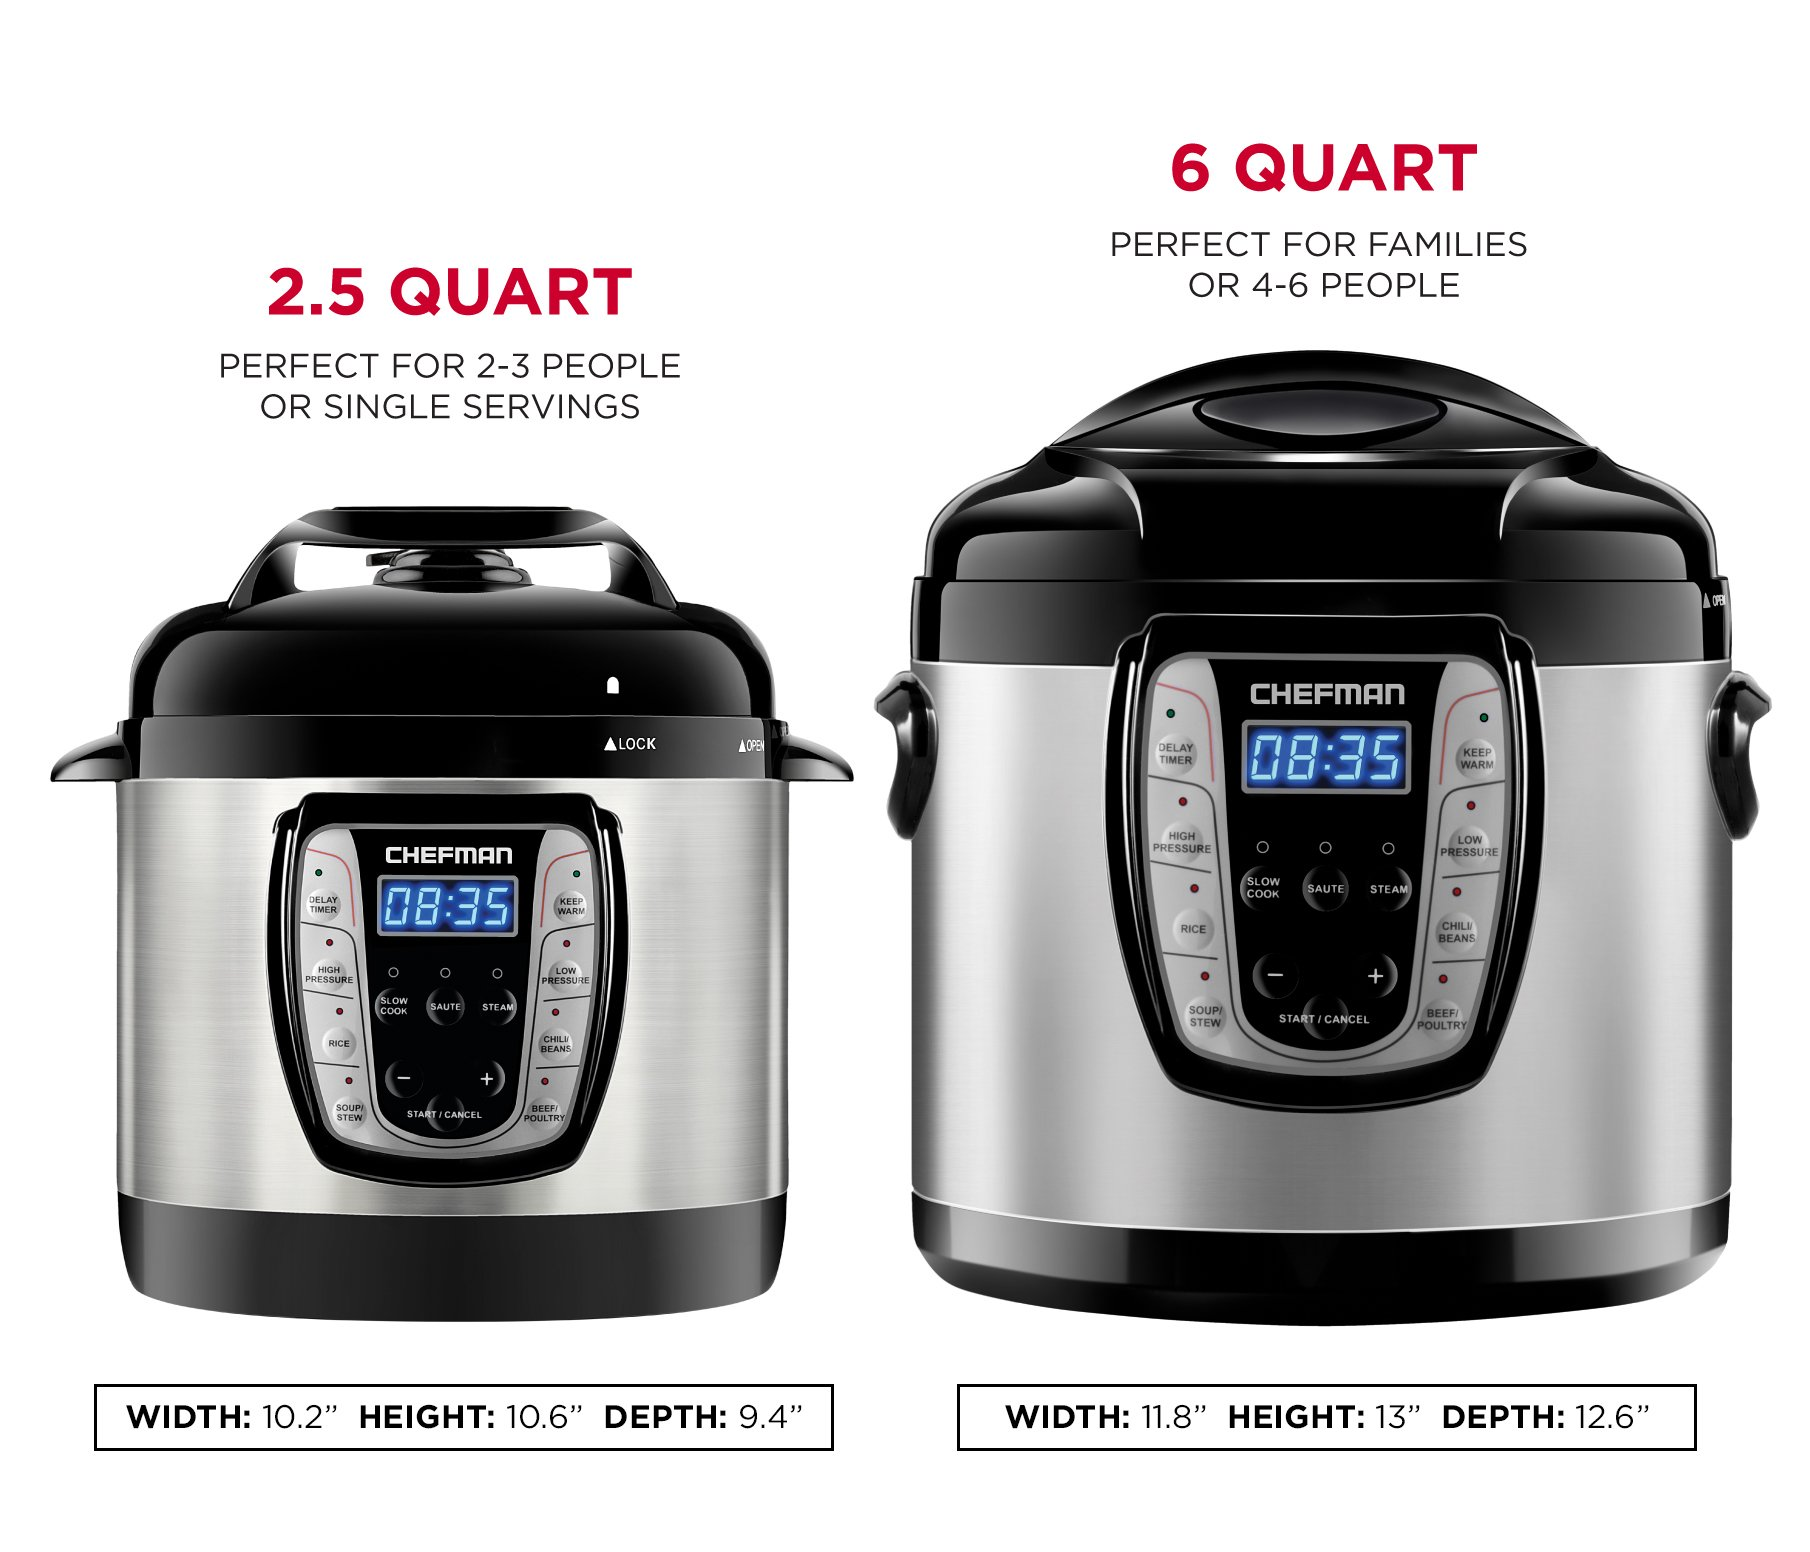 Chefman 6 Qt. Electric Multicooker, 9-in-1 Programmable Pressure Cooker, Prepare Dishes in an Instant, Aluminum Pot Multifunctional Slow Cooker, Rice Cooker/Steamer, Sauté, Yogurt, Soup Maker by Chefman (Image #9)